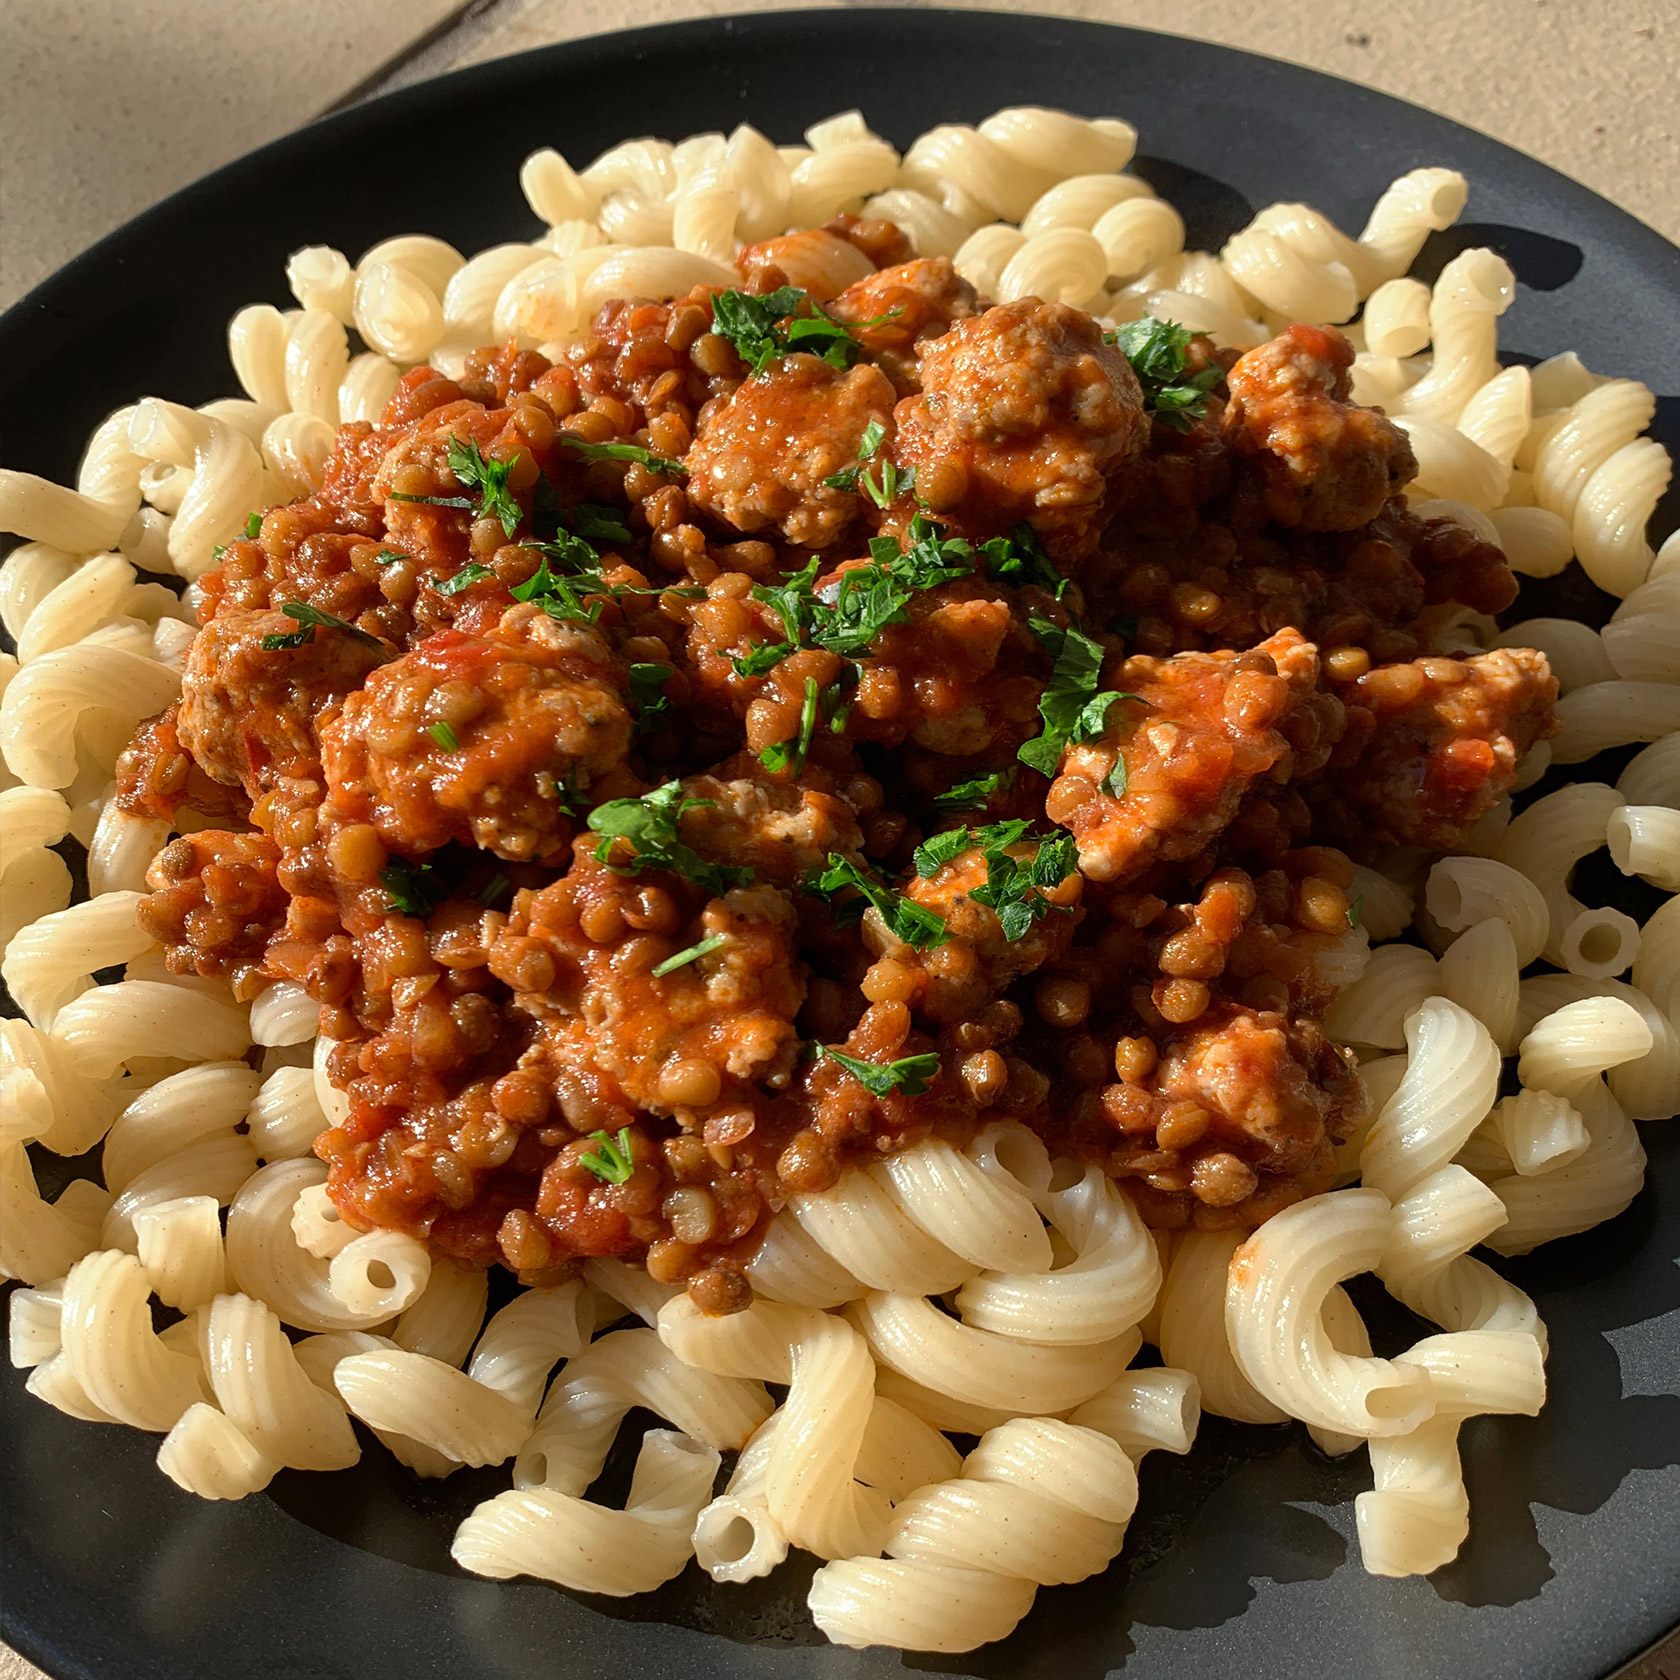 Lentil and Salchicha (sausage) with Pasta